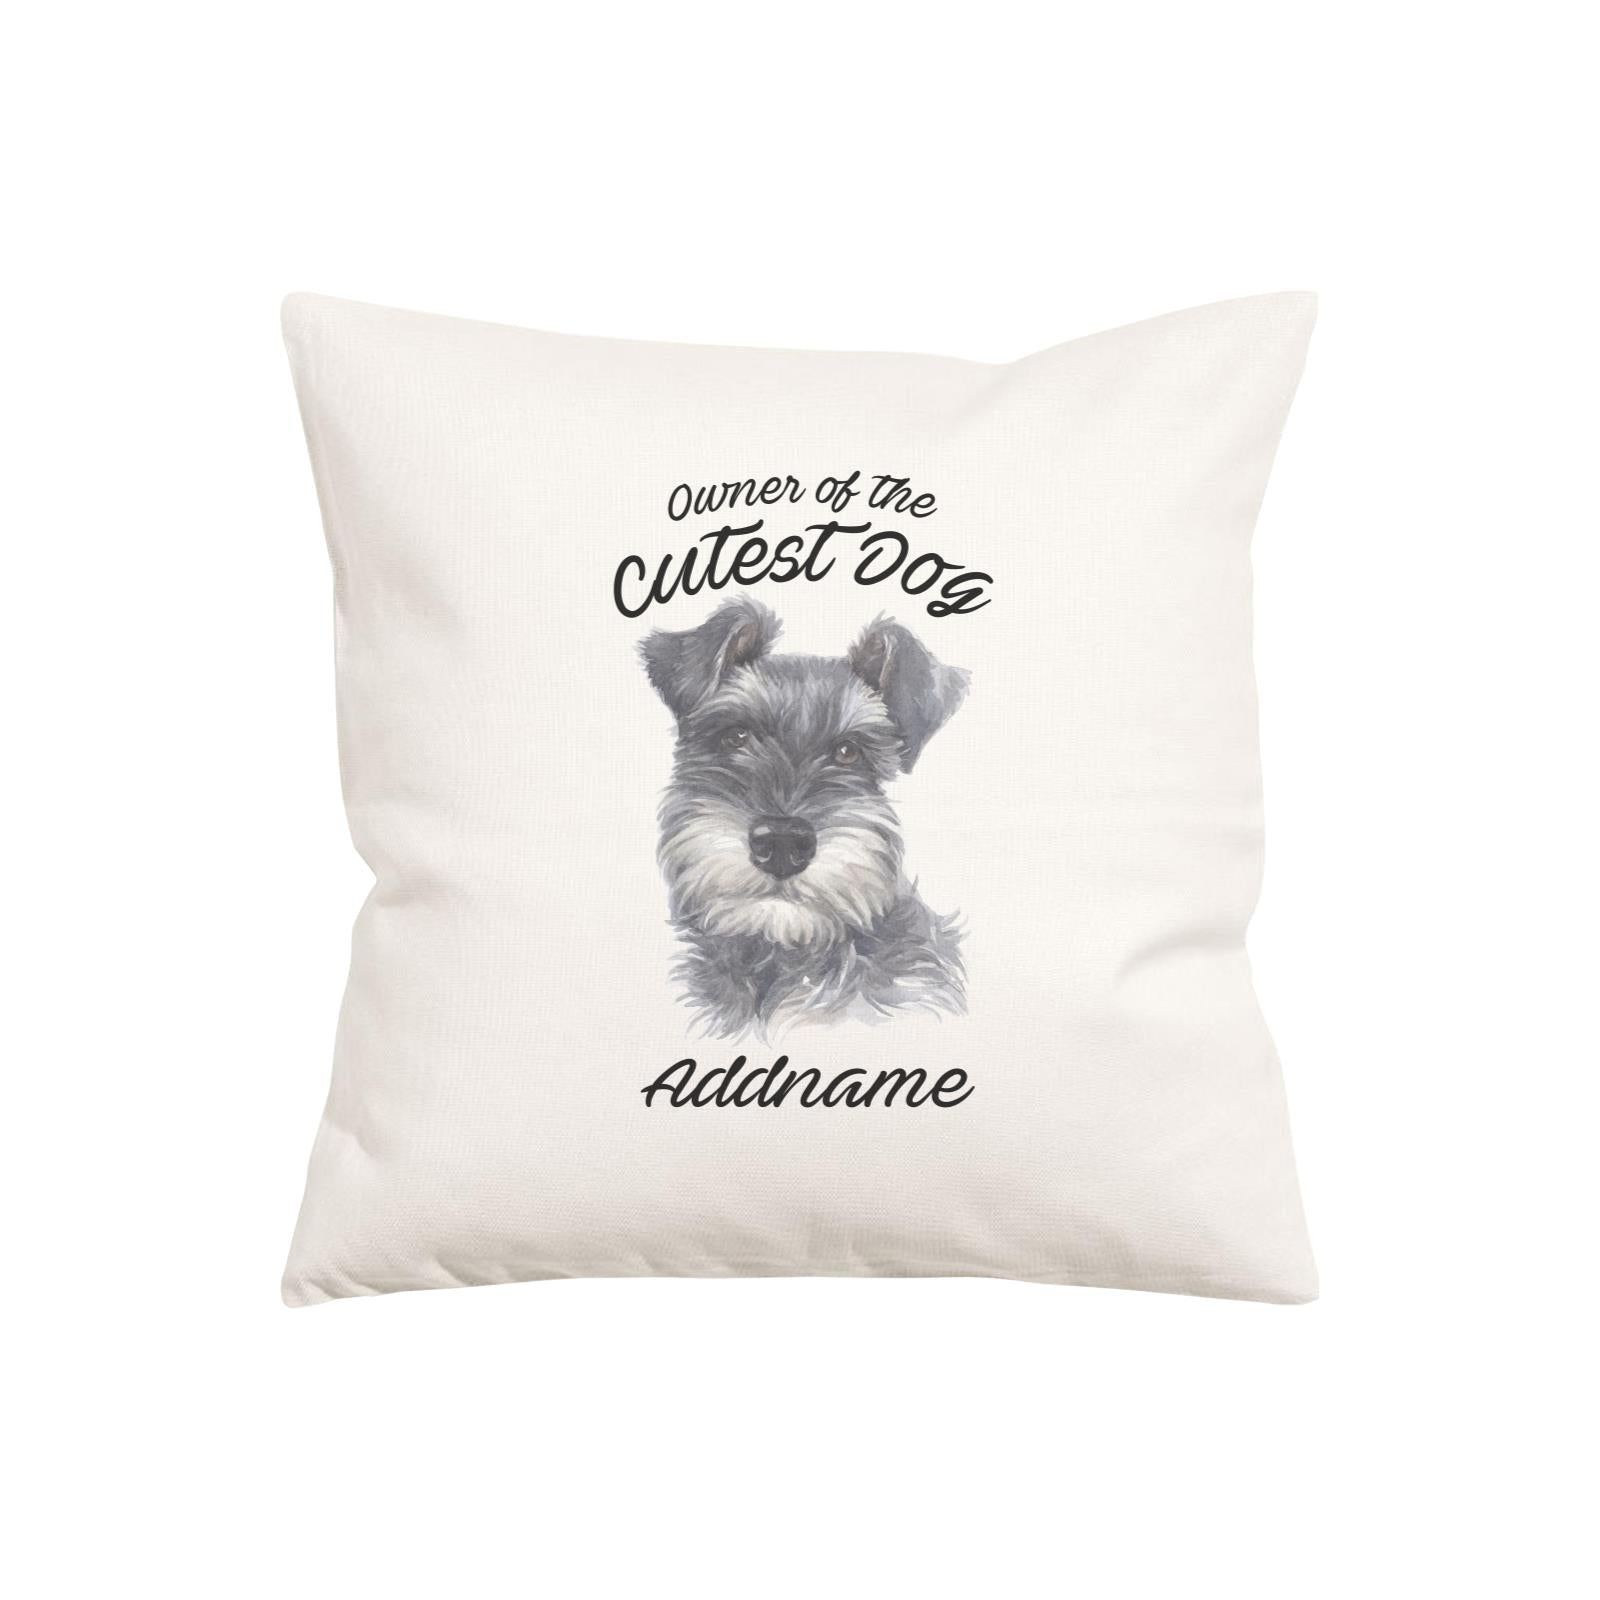 Watercolor Dog Owner Of The Cutest Dog Schnauzer Black Addname Pillow Cushion